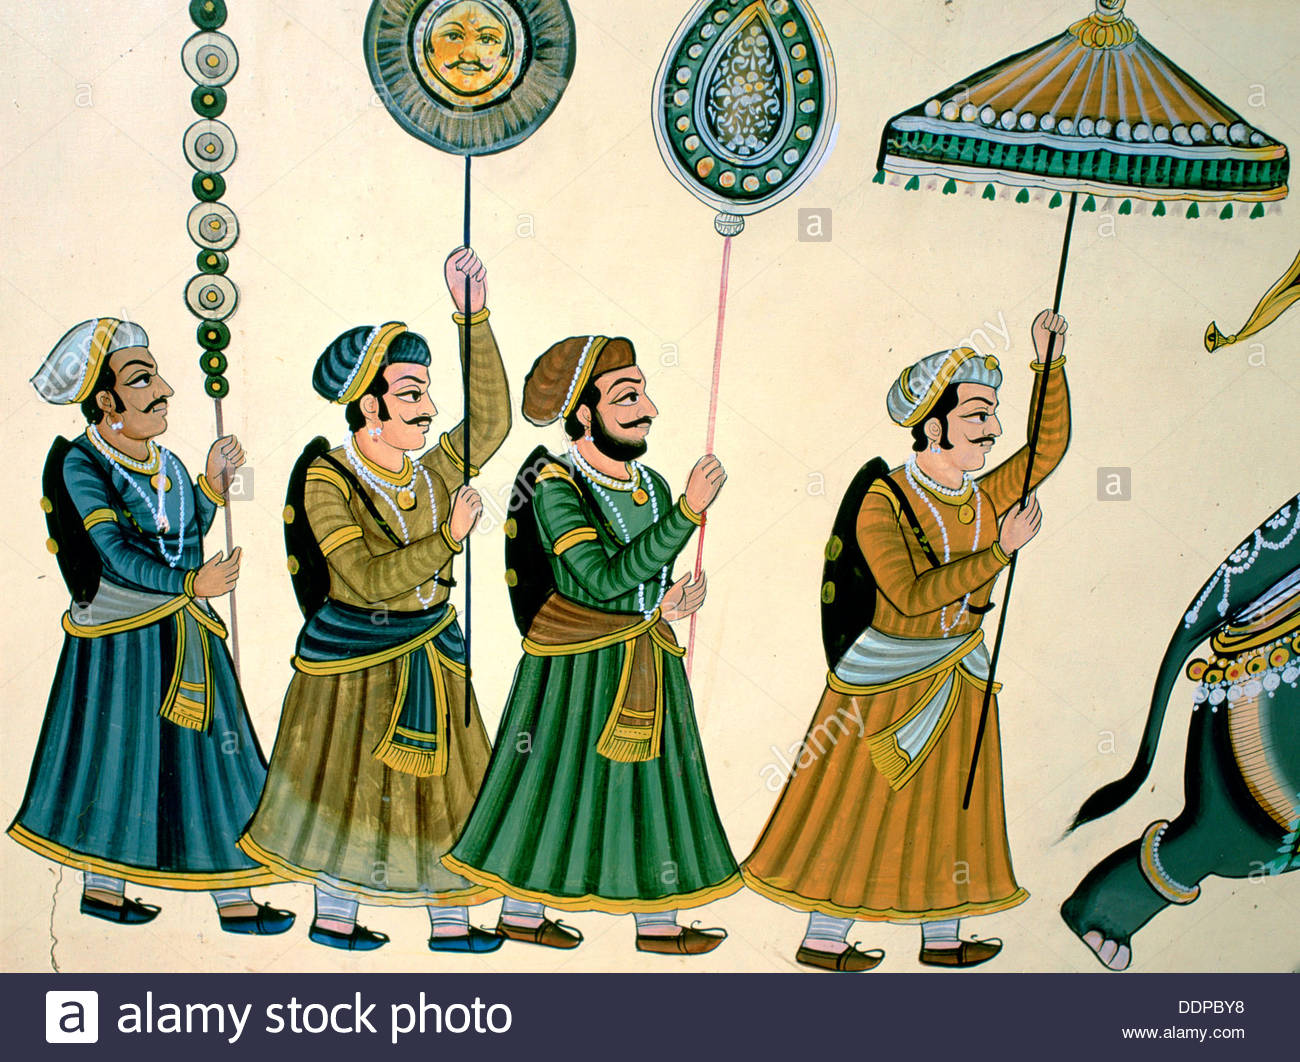 Udaipur Wall decoration with Courtiers, Rajasthan, India. Artist: Dr Stephen Coyne - Stock Image